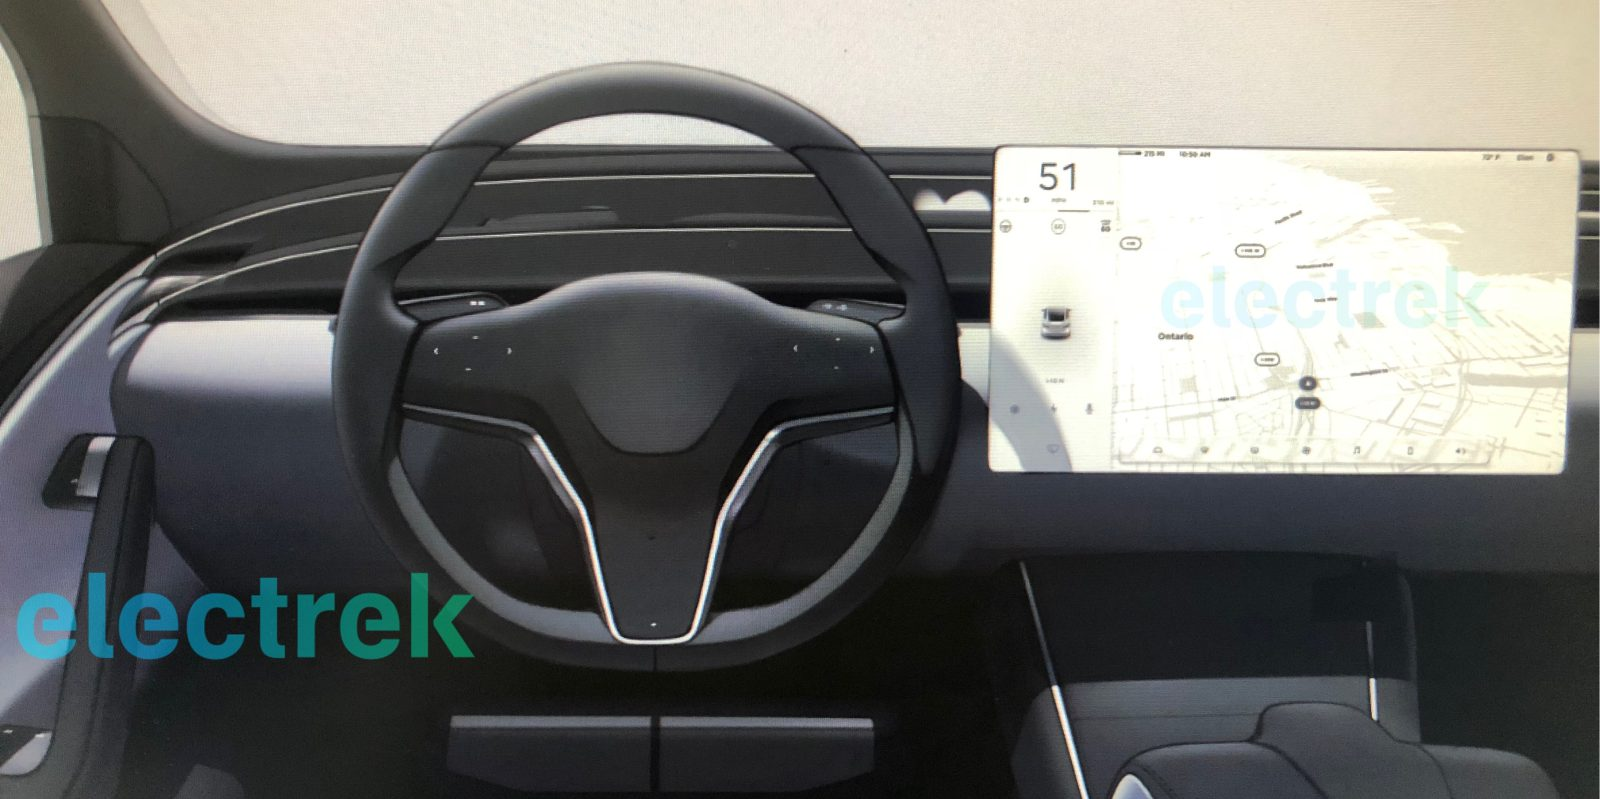 hight resolution of exclusive first look at tesla model s and model x interior refresh going spartan like model 3